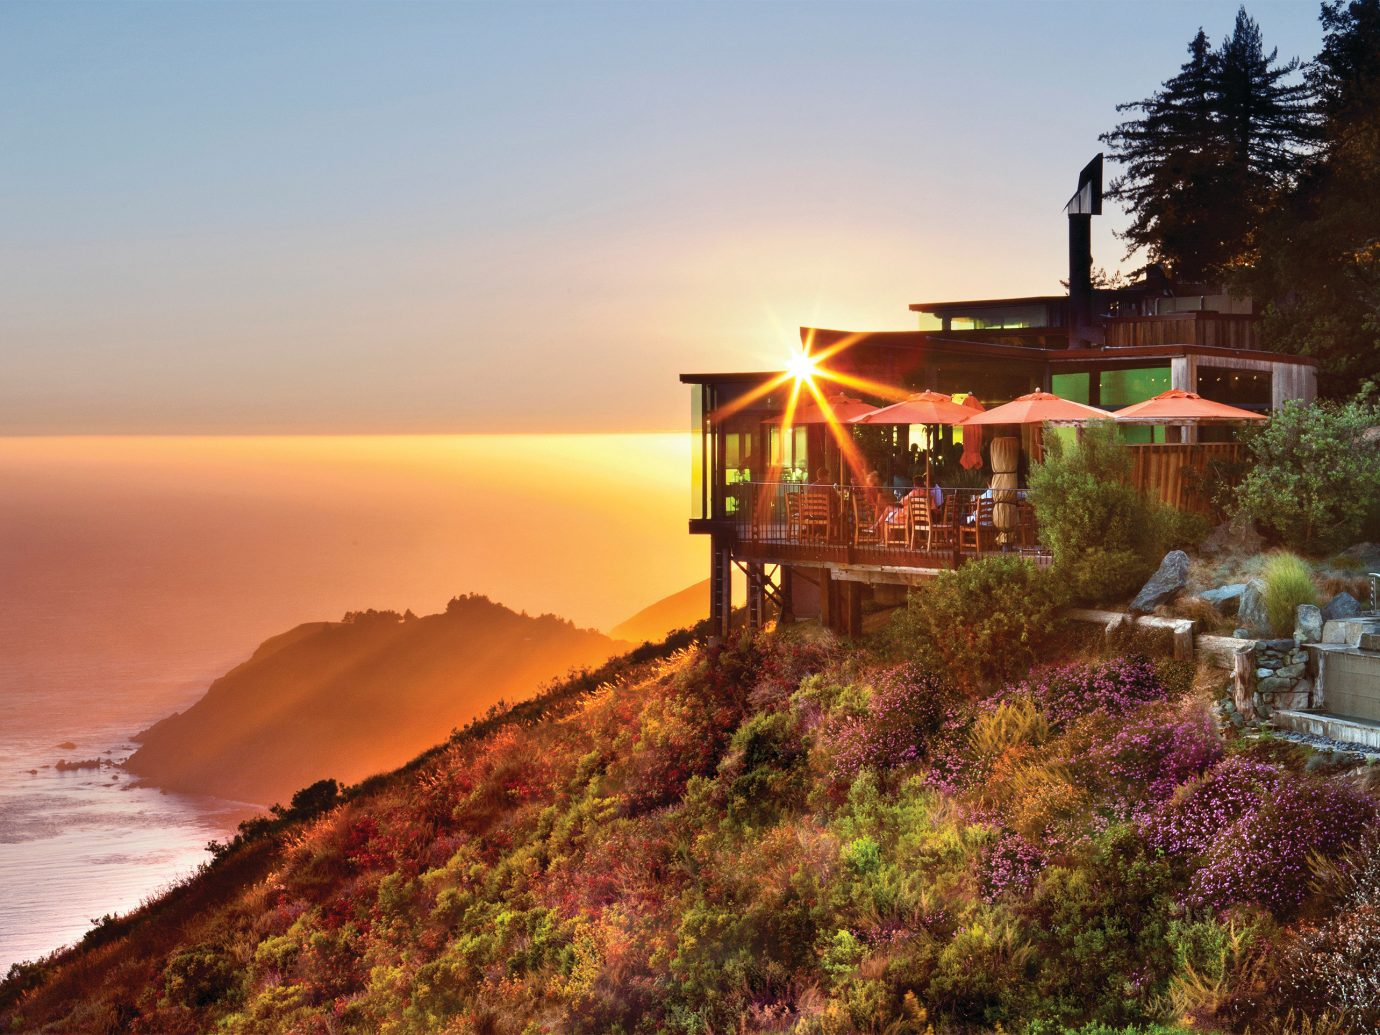 view of Post Ranch Inn perched on a cliff over the ocean during sunset